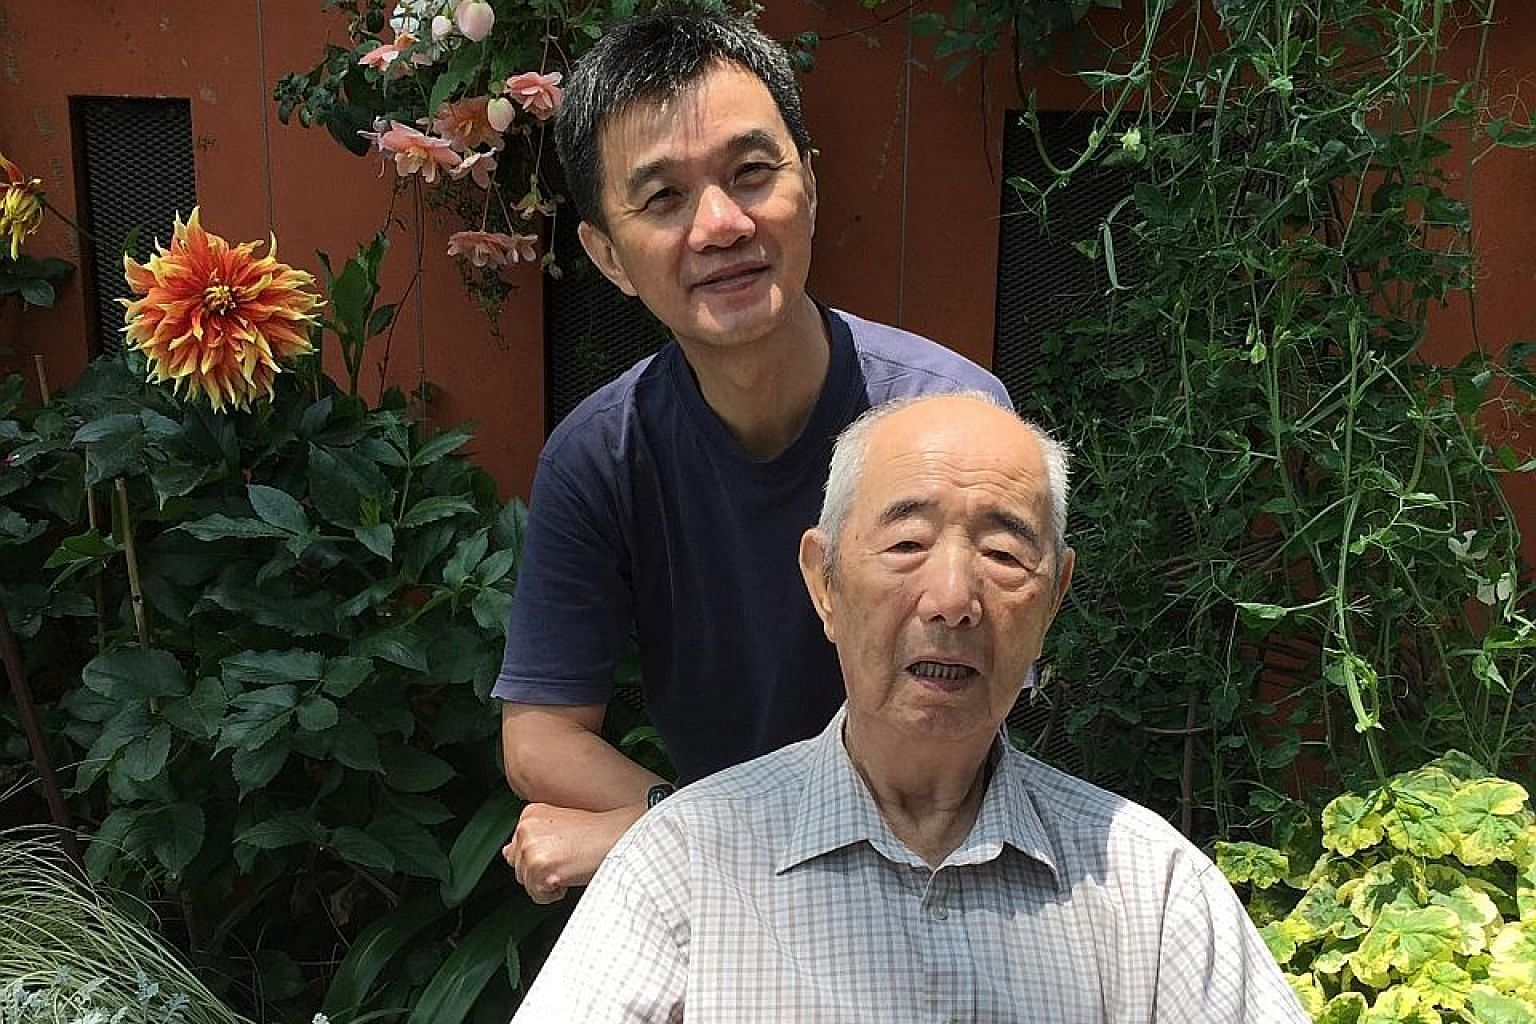 The writer at Gardens by the Bay earlier this year with his father, who is now unconscious and in intensive care at hospital.